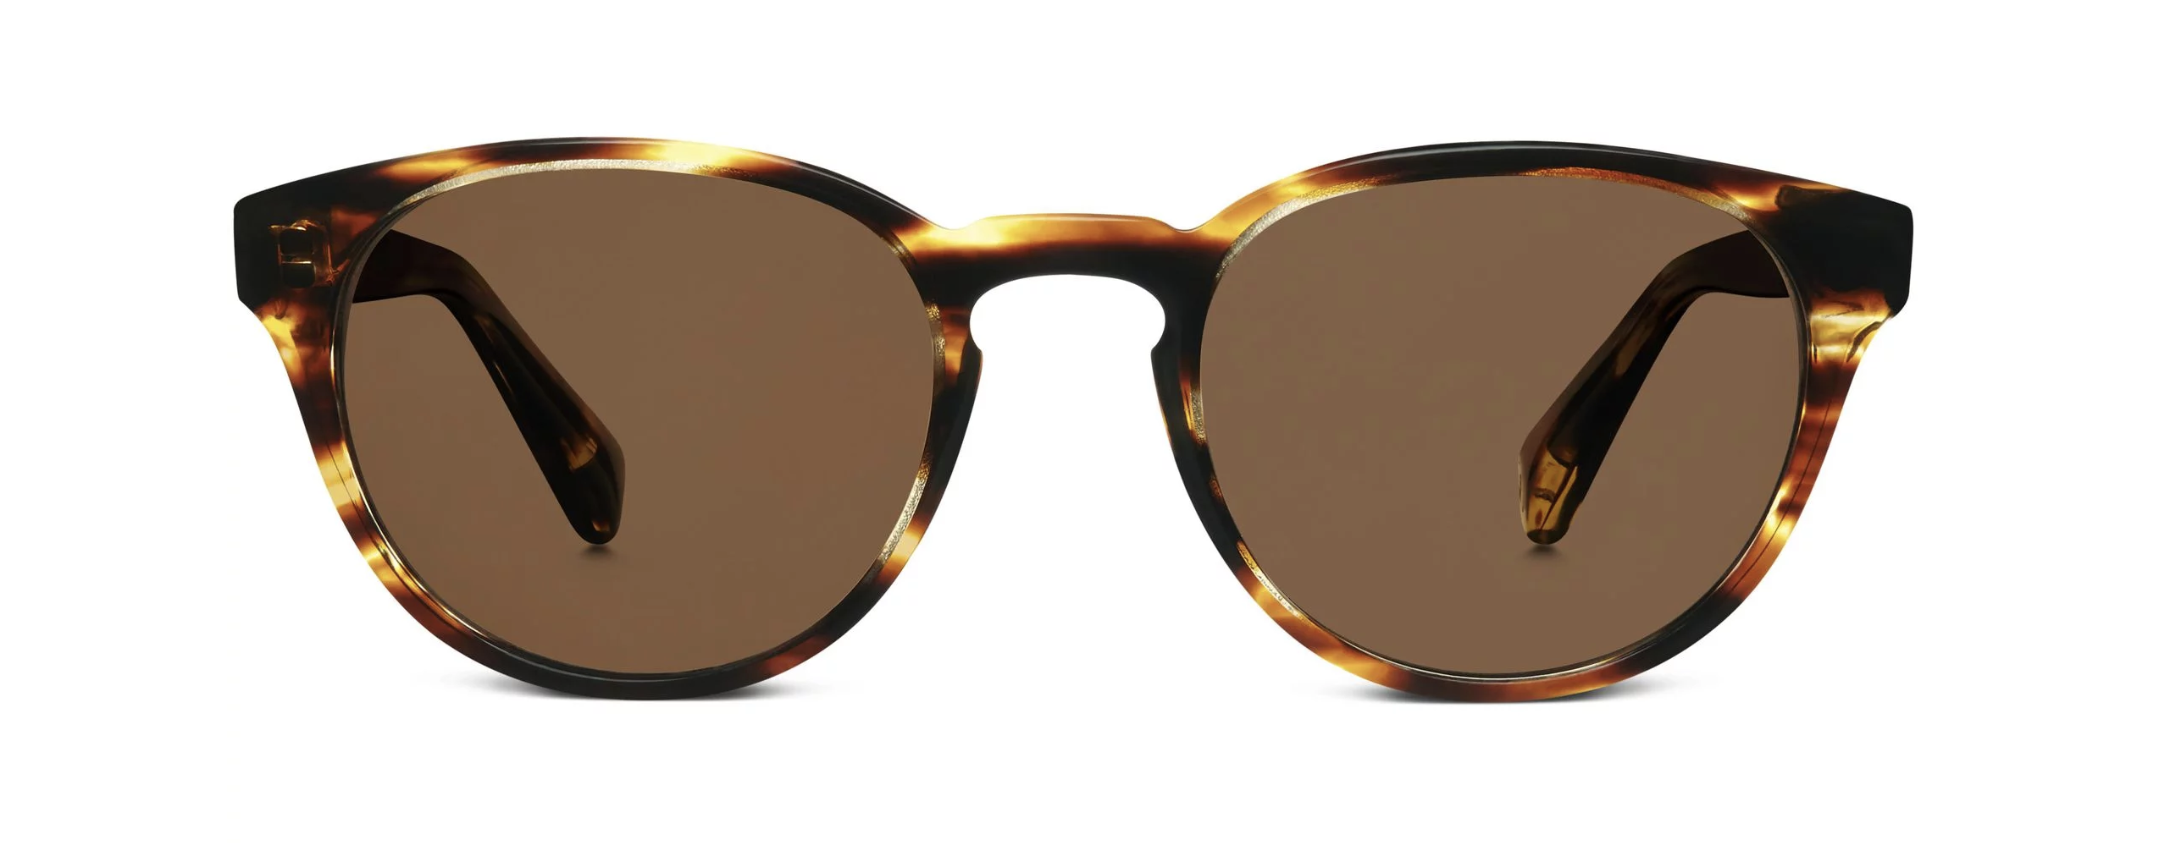 Warby Parker Percy Sunglasses